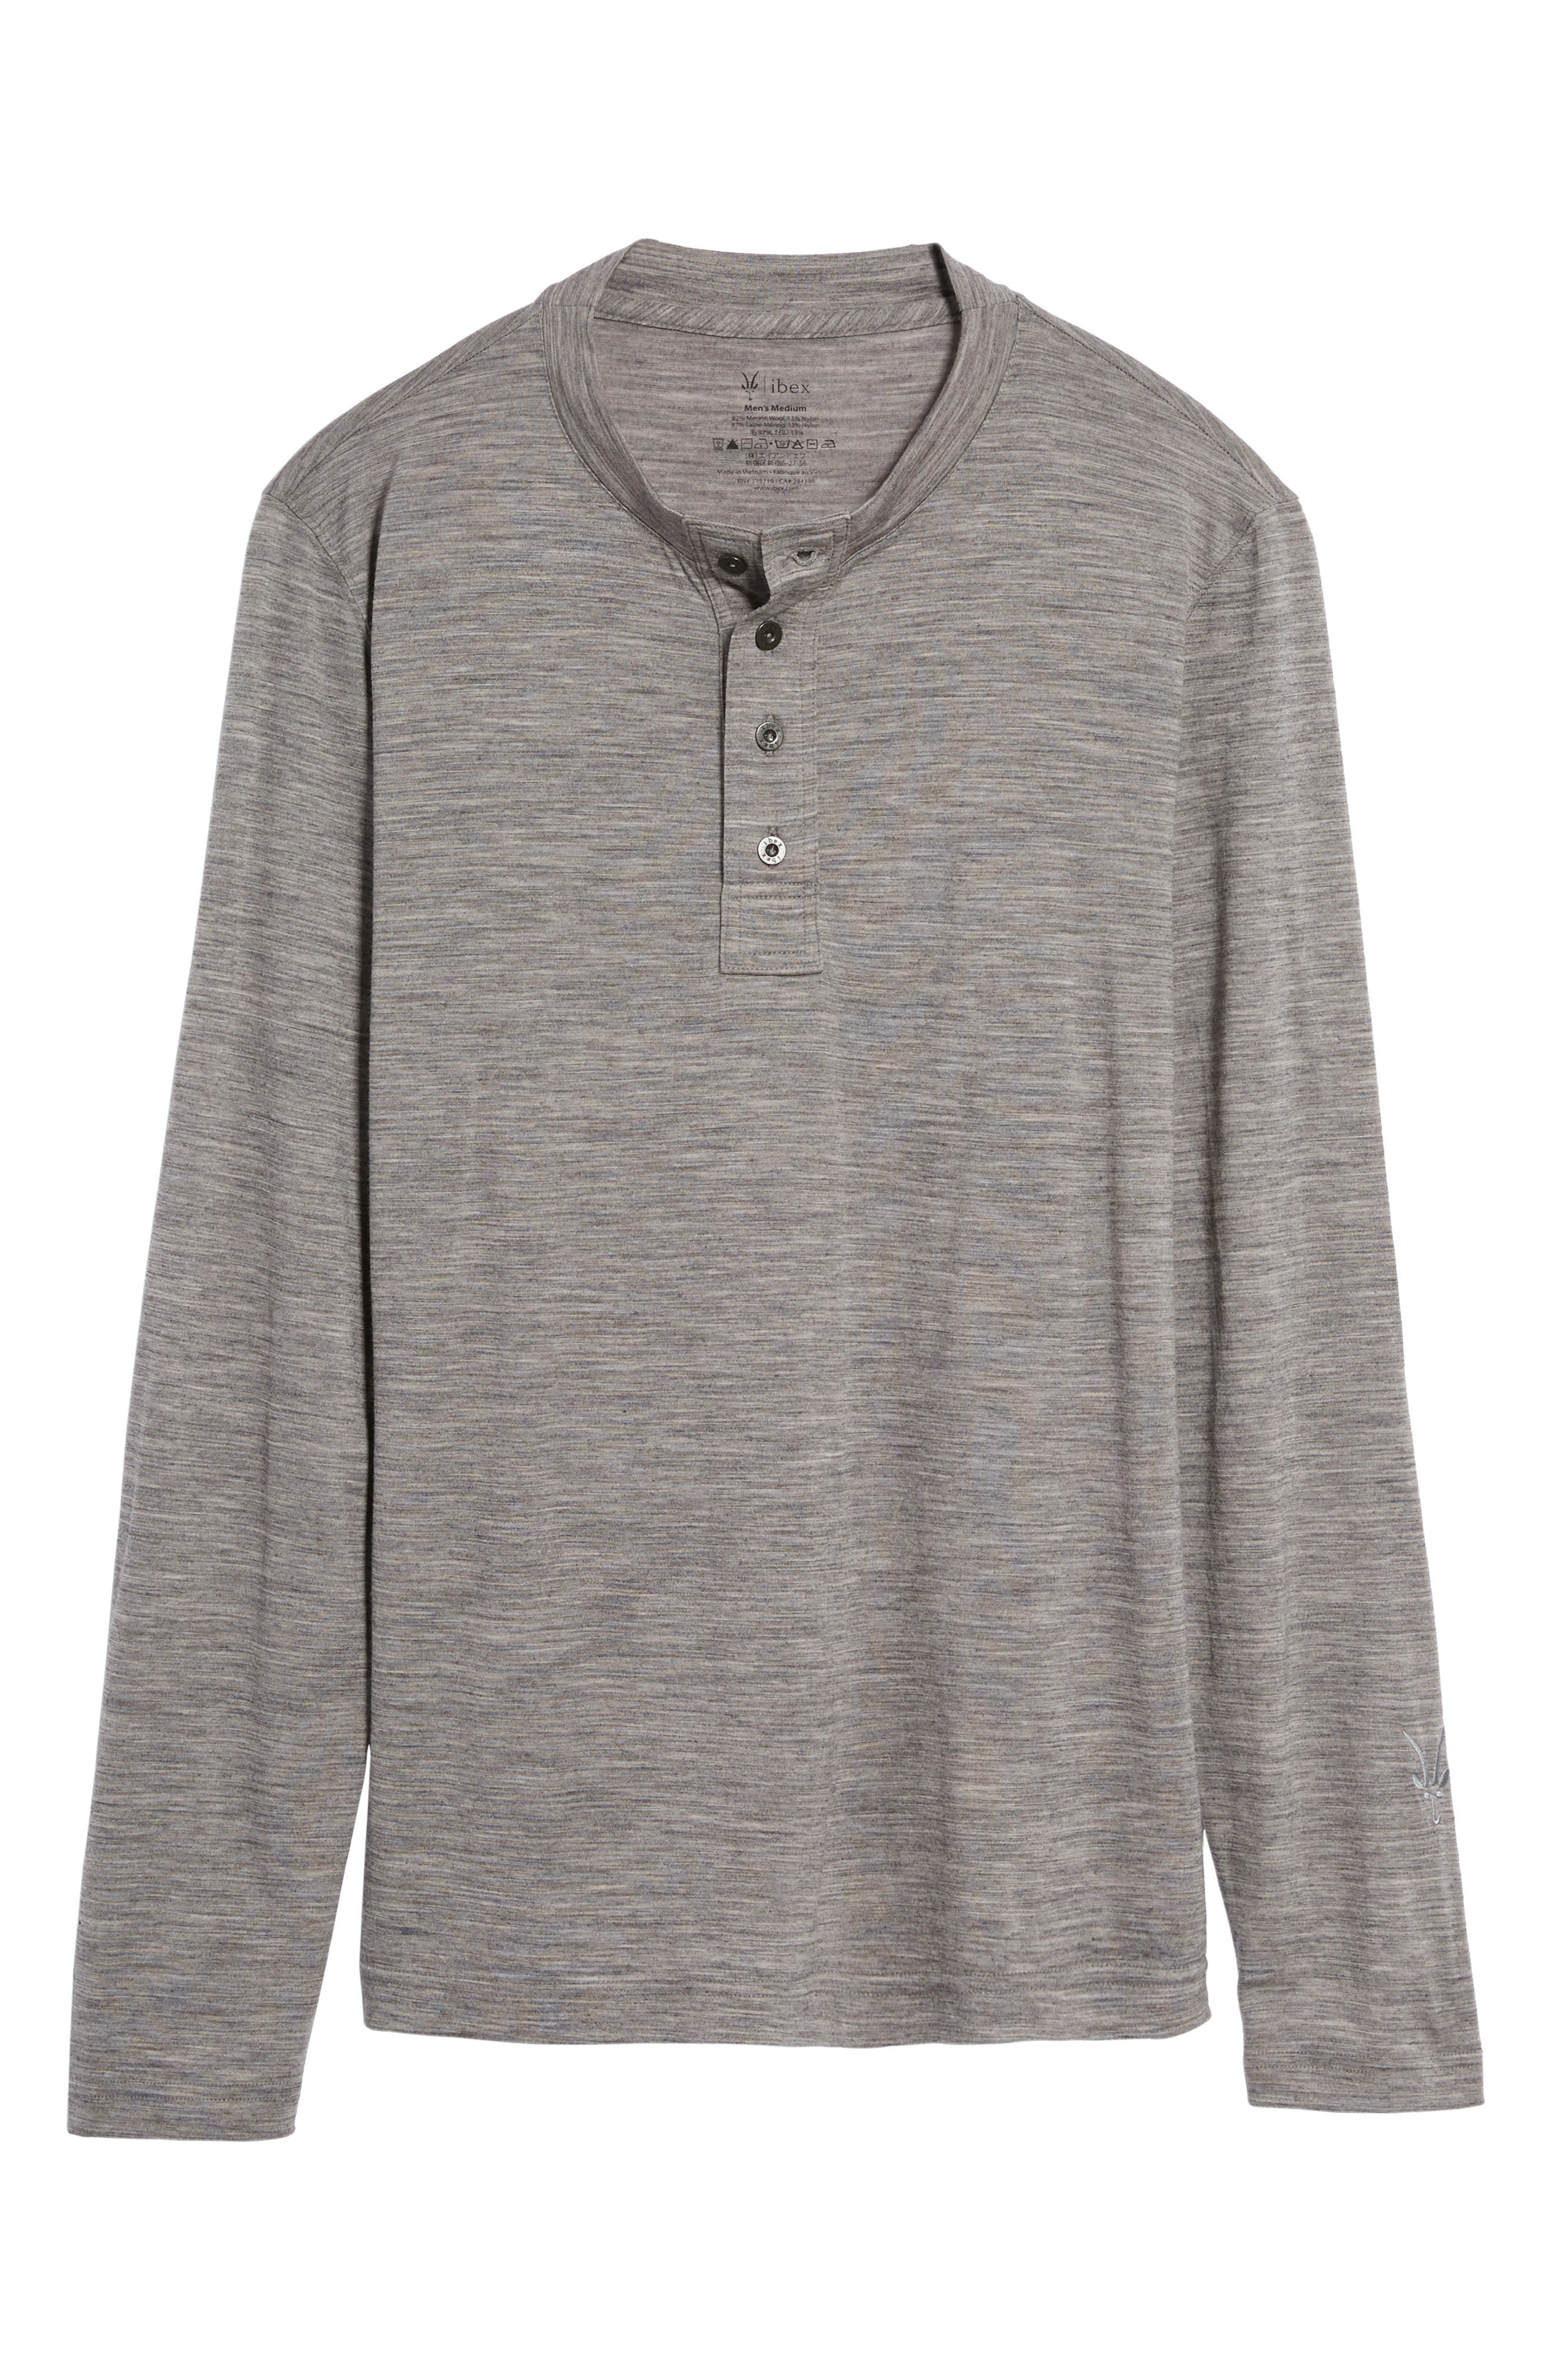 Odyssey Merino Wool Blend Henley,                             Alternate thumbnail 6, color,                             Stone Grey Heather